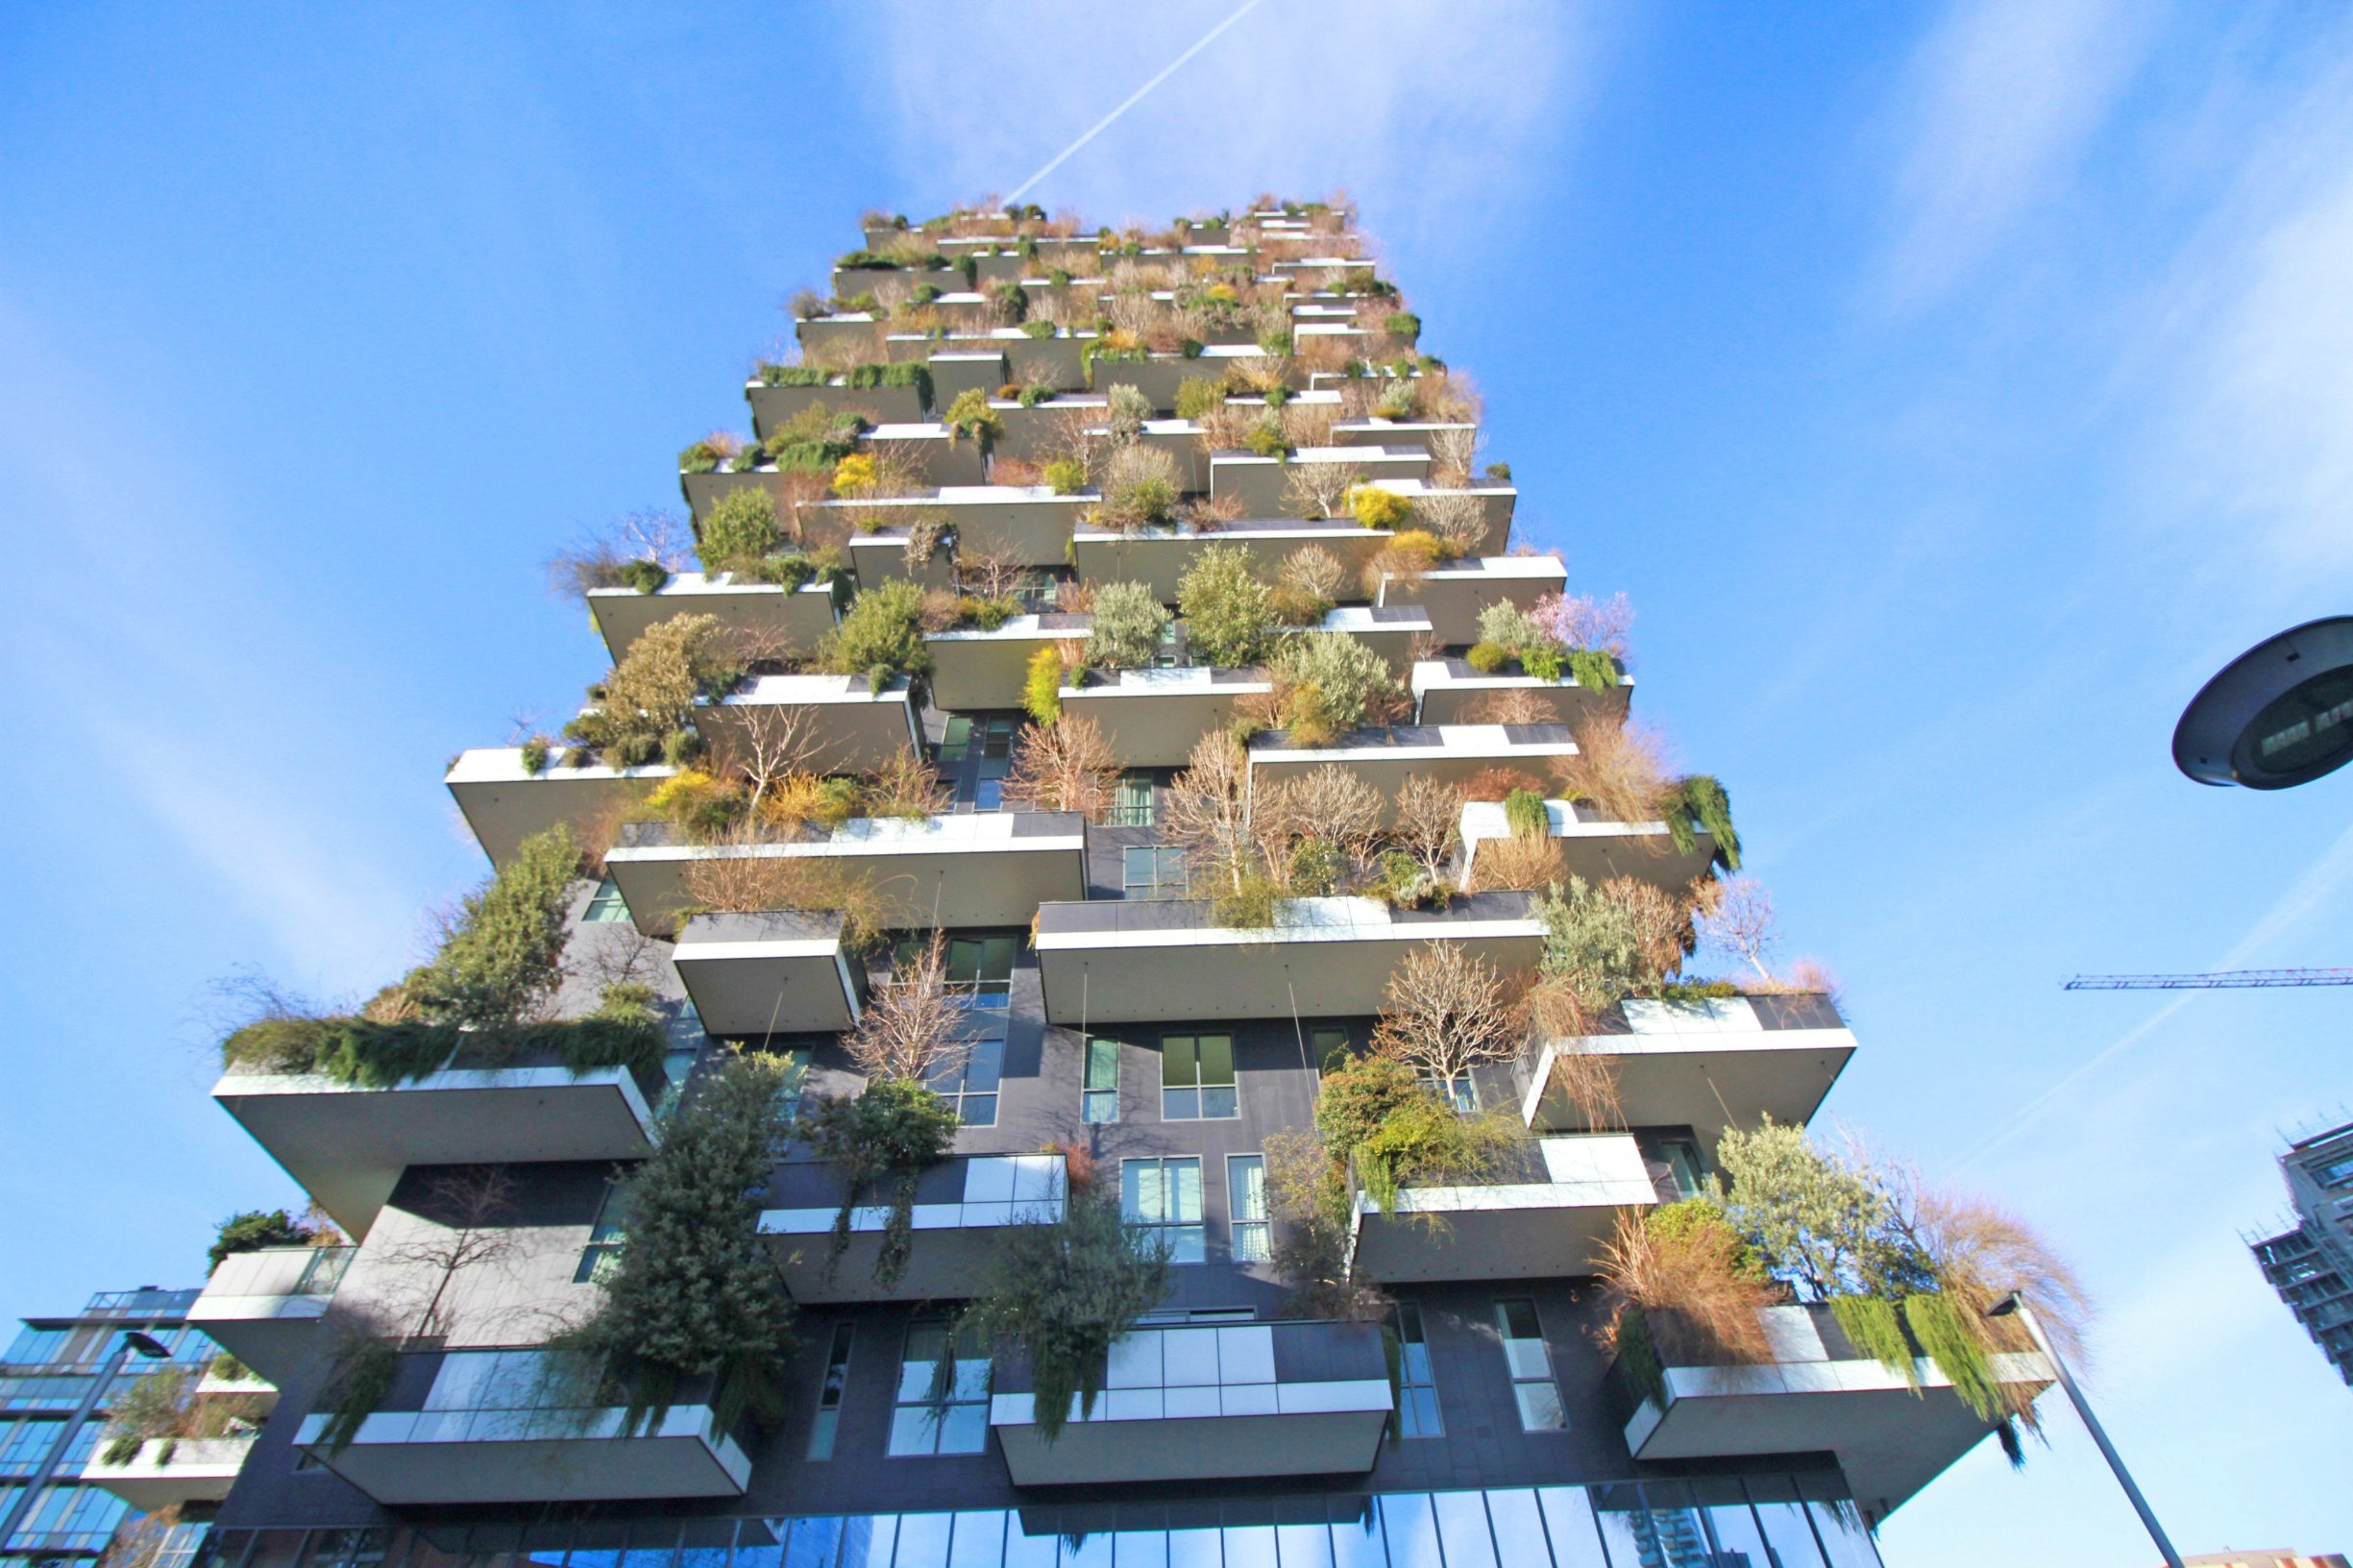 Italy, Milan -  February 12, 2019.Spring in the city..Warm weather fools trees into blooming early.Flowering trees seen at the Bosco Verticale, or Vertical Forest, two skyscrapers as residential apartments by Boeri Studio., Image: 428370836, License: Rights-managed, Restrictions: * France, Germany and Italy Rights Out *, Model Release: no, Credit line: Profimedia, Zuma Press - Archives